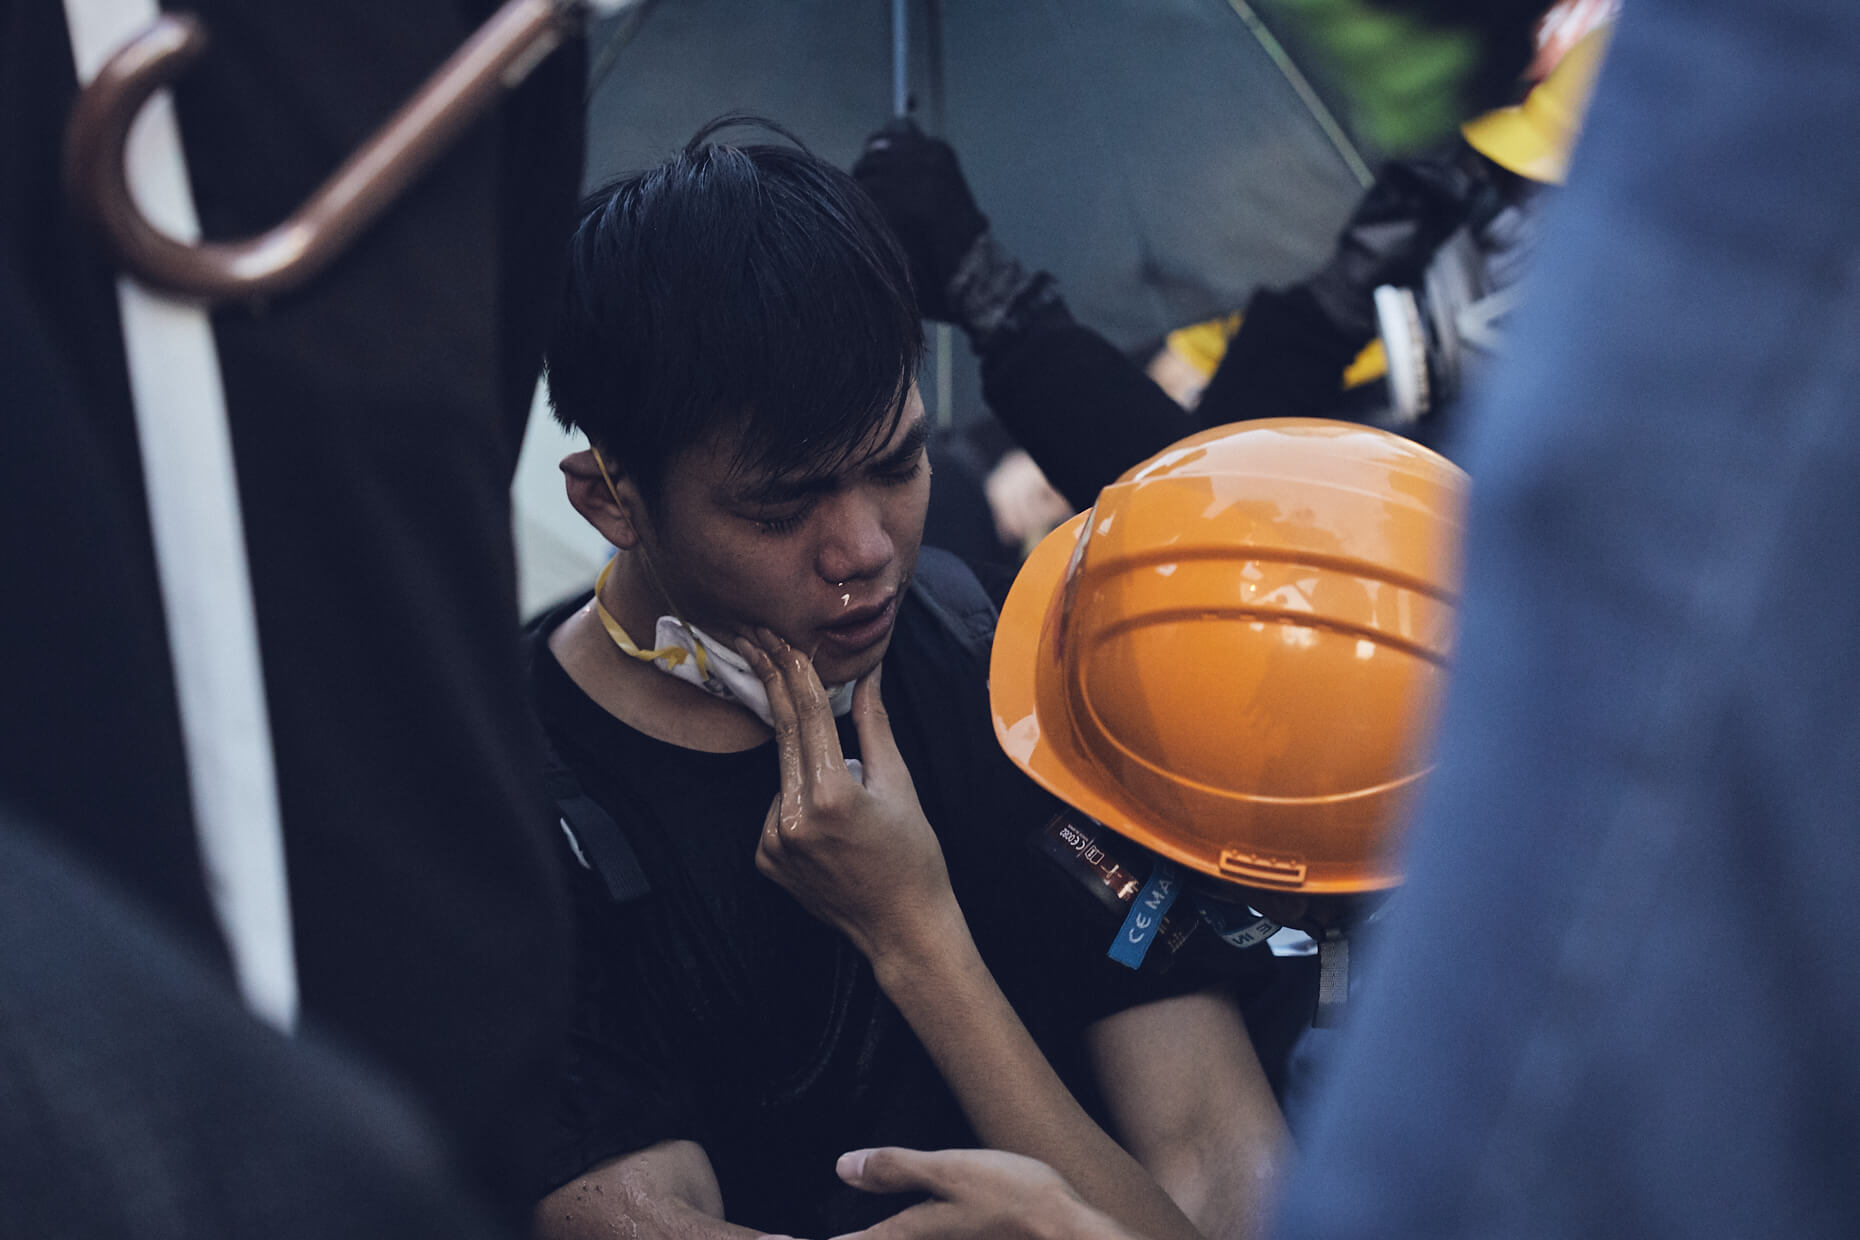 Hong_Kong_Protests_48